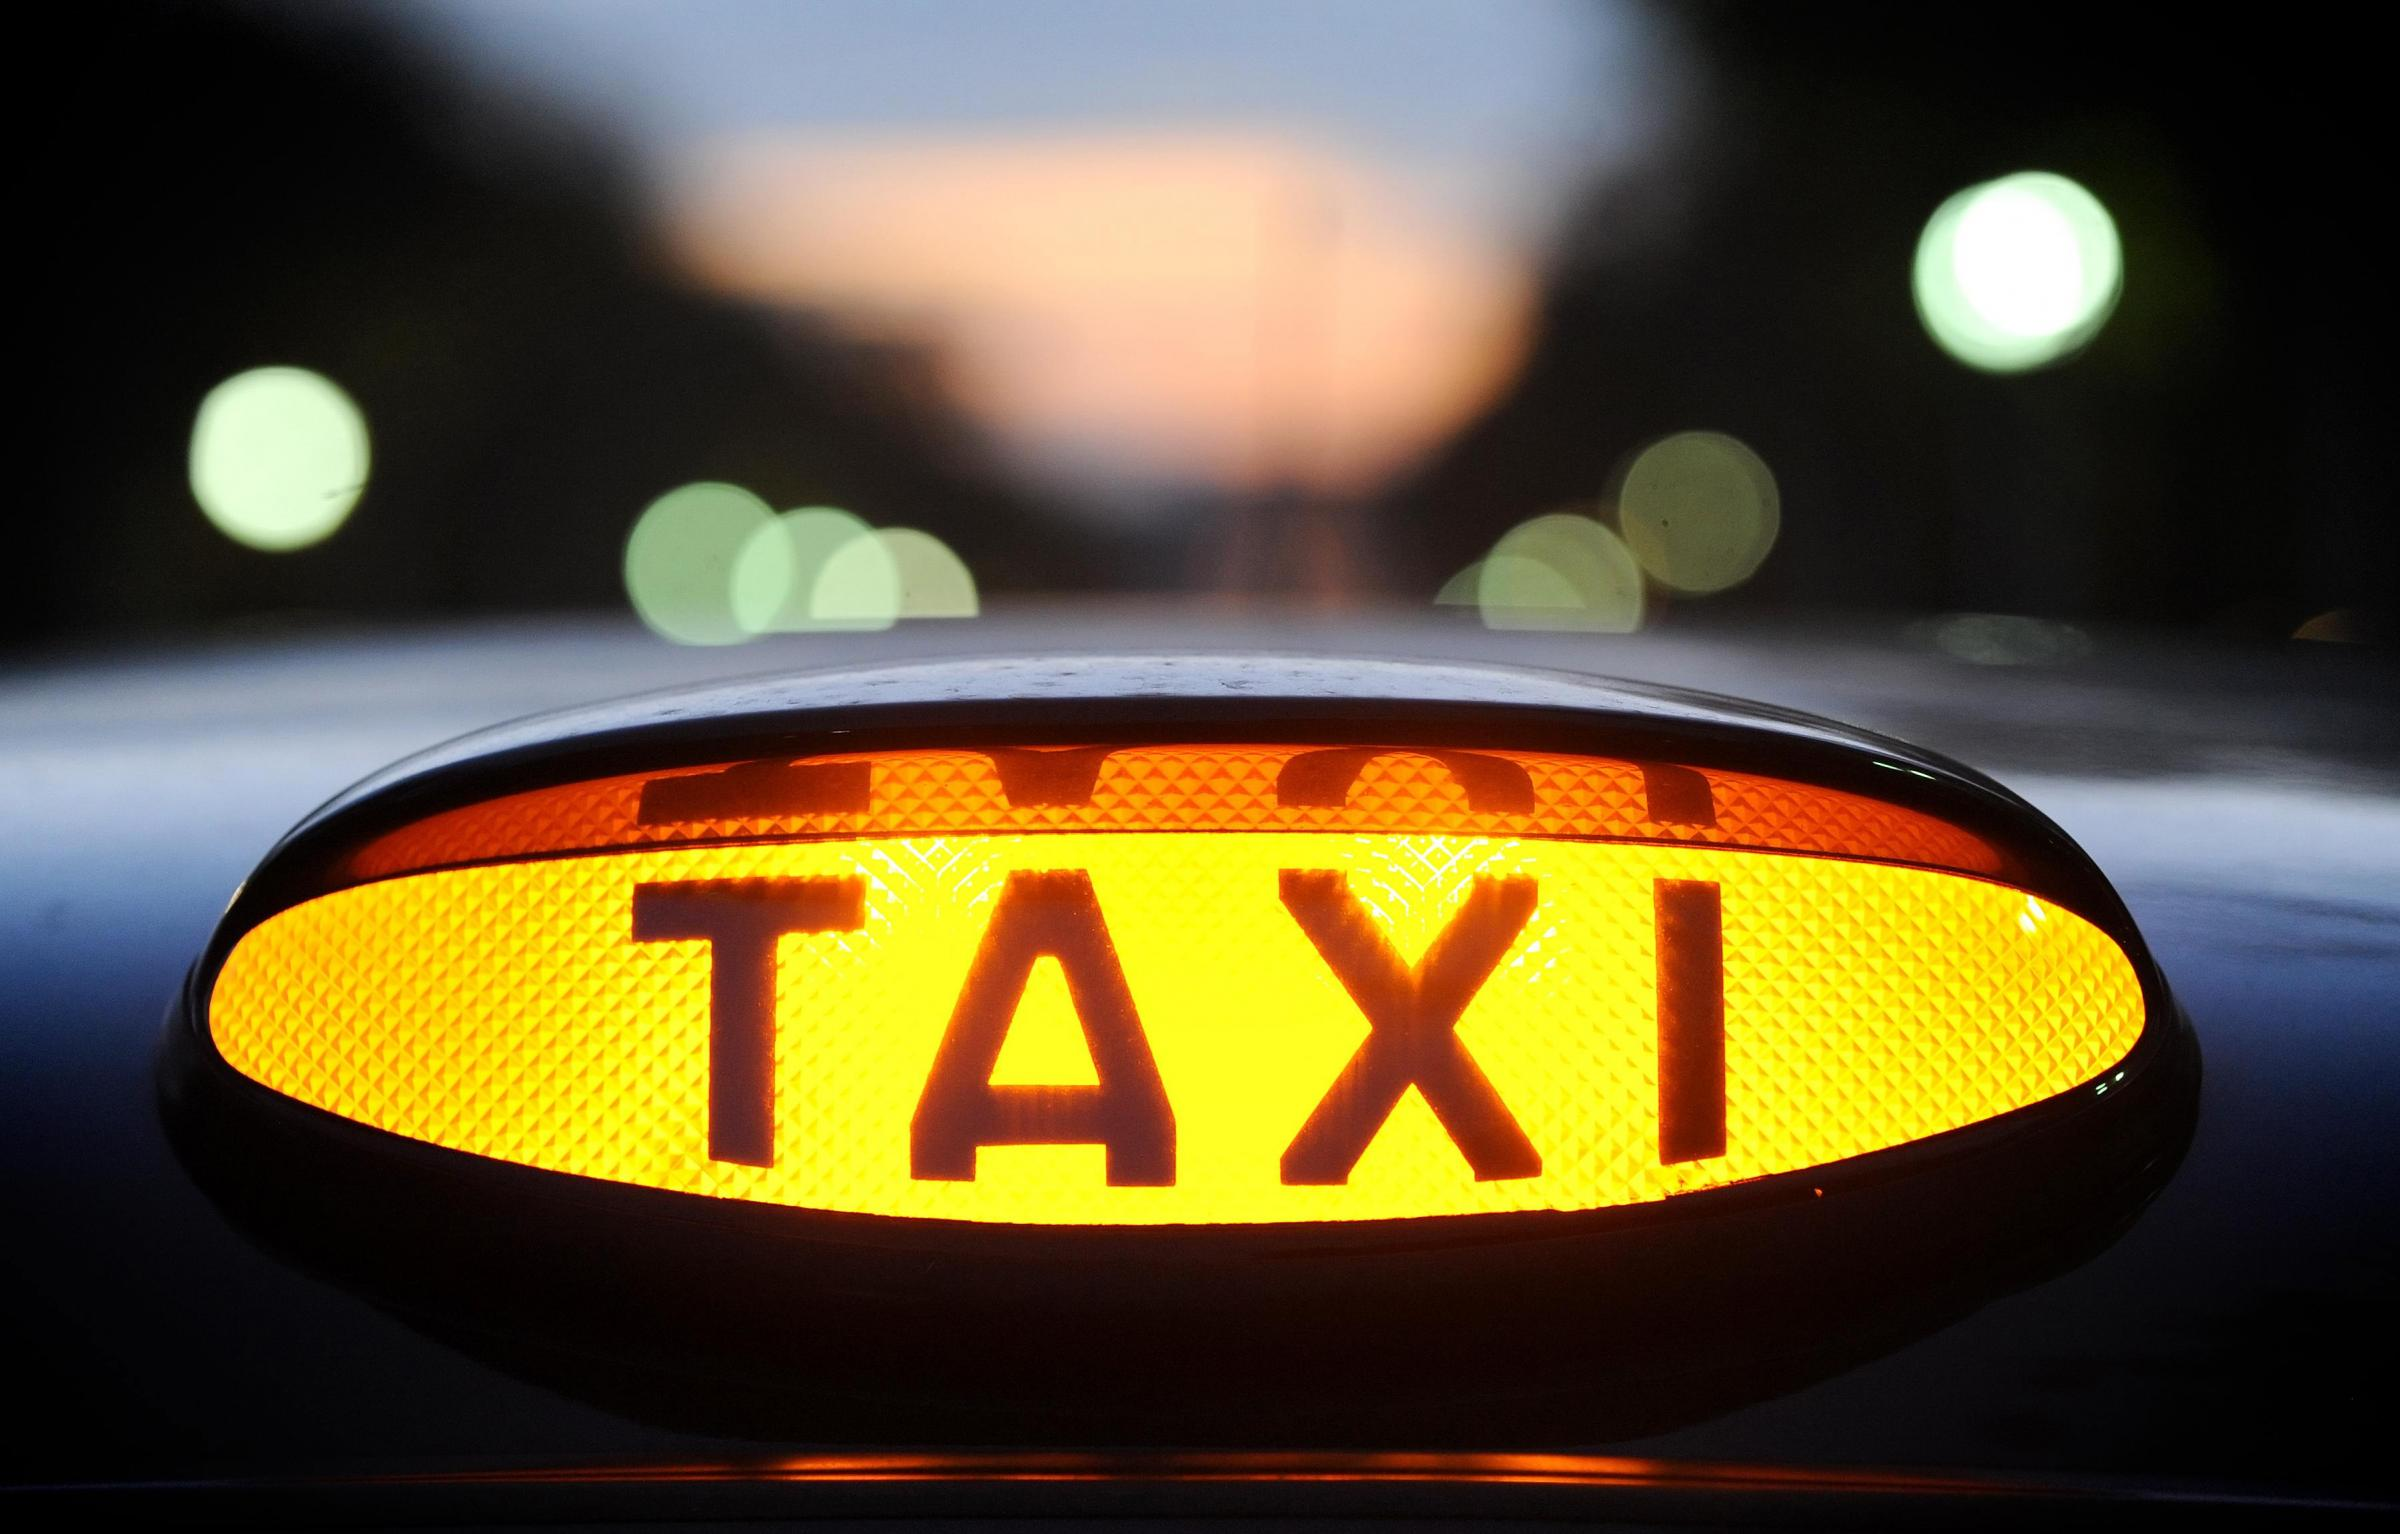 A North Yorkshire taxi driver has had his licence revoked after threatening to chop his daughter's legs up and boil her head in a pan